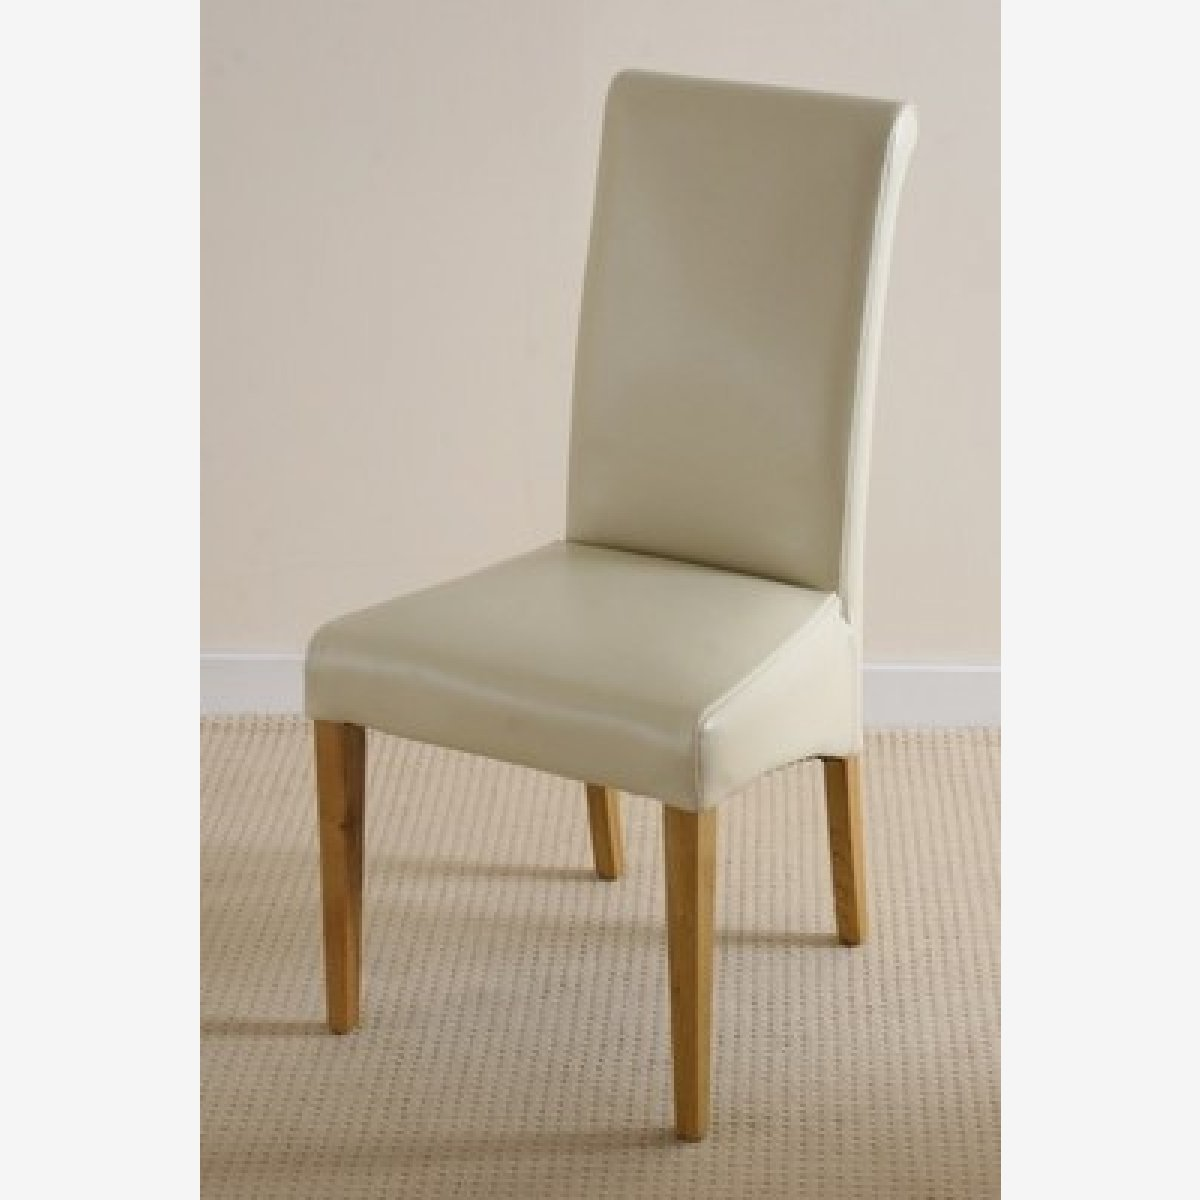 2 x 4 dining chairs office chair that rolls on carpet fresco 4ft solid oak table cream leather scroll